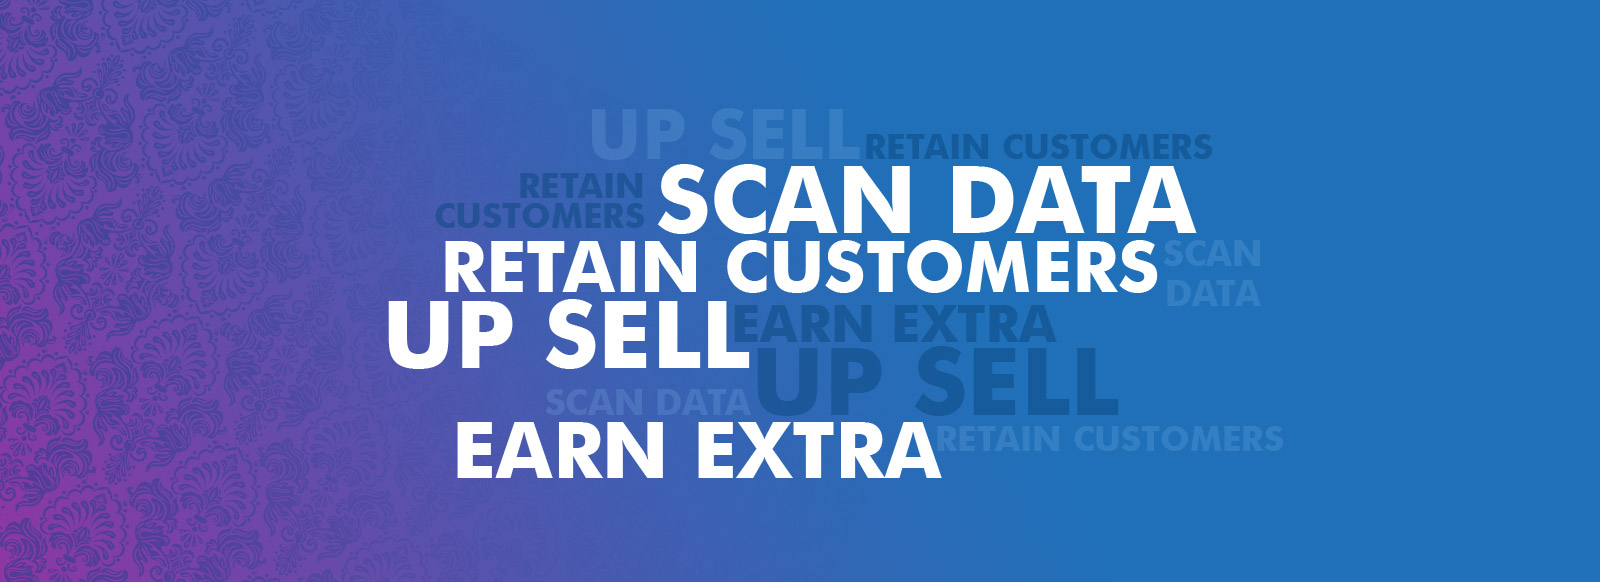 SCAN DATA - UP SELL